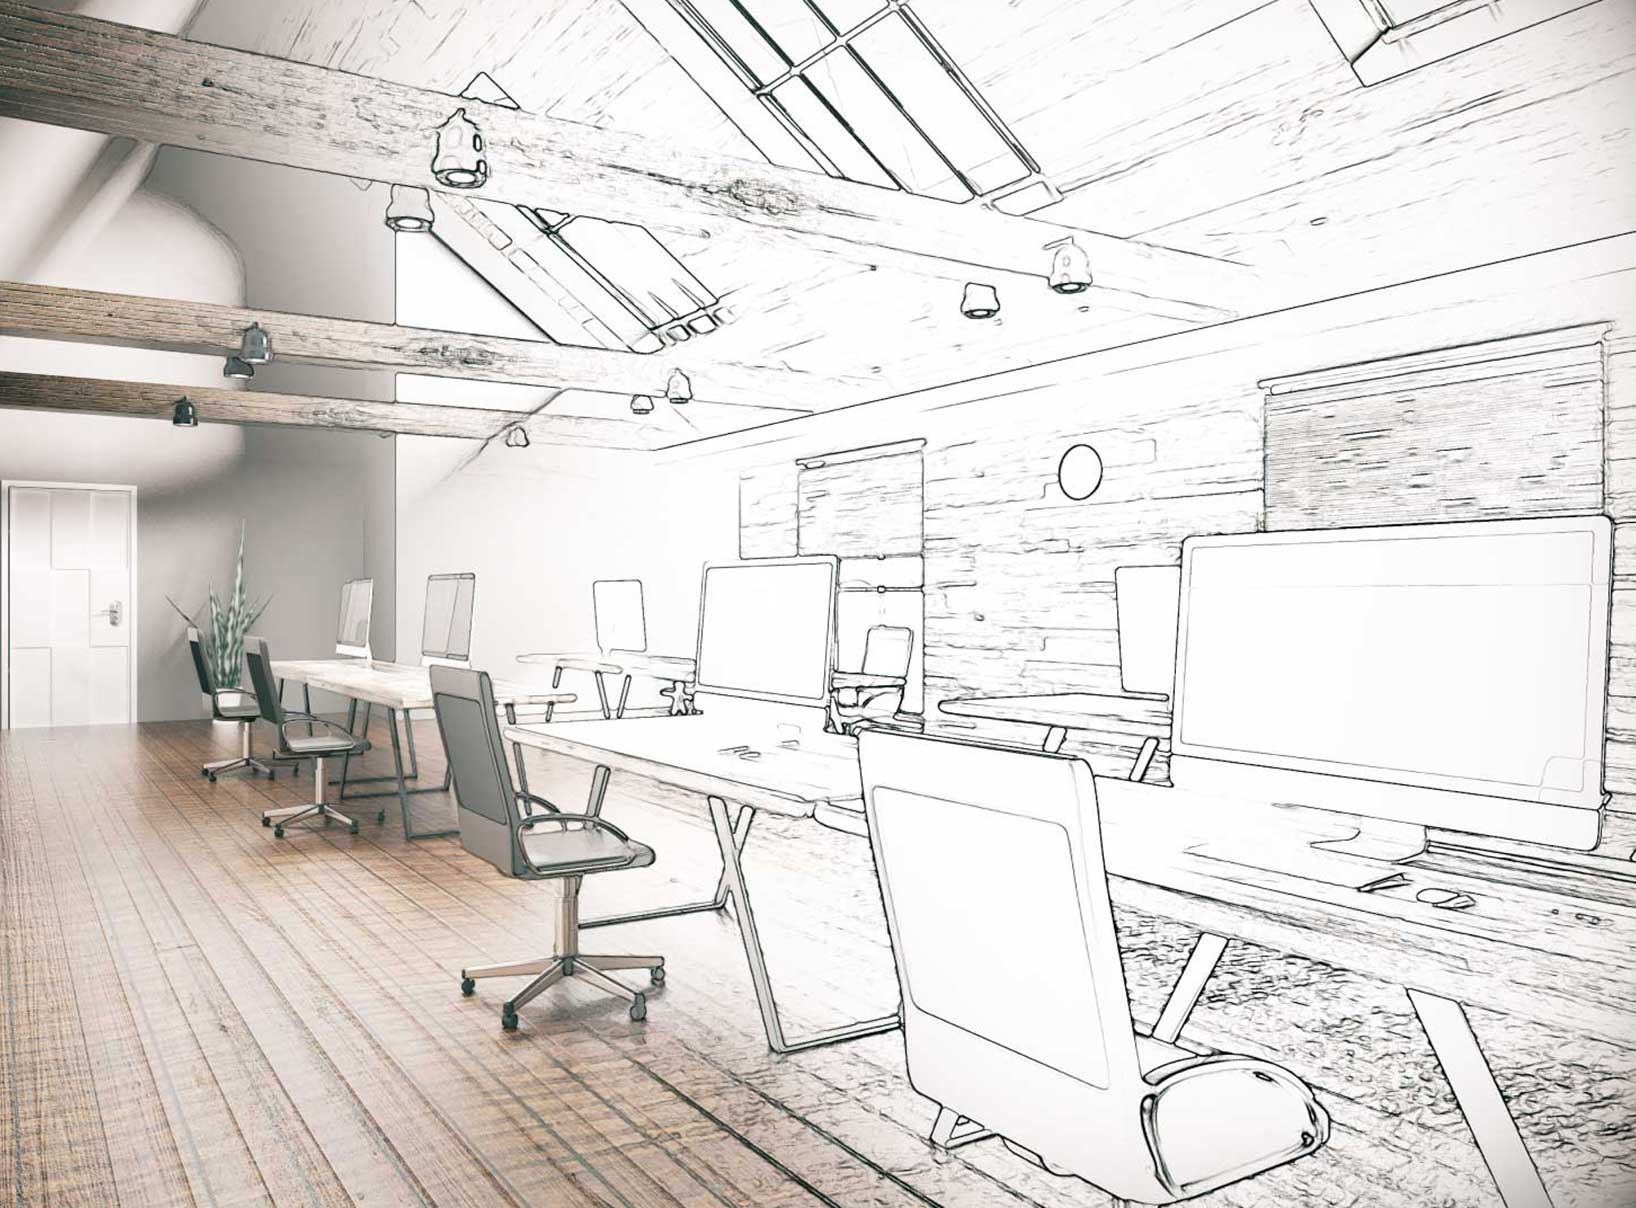 photo of workplace with computers, half photograph and half sketch